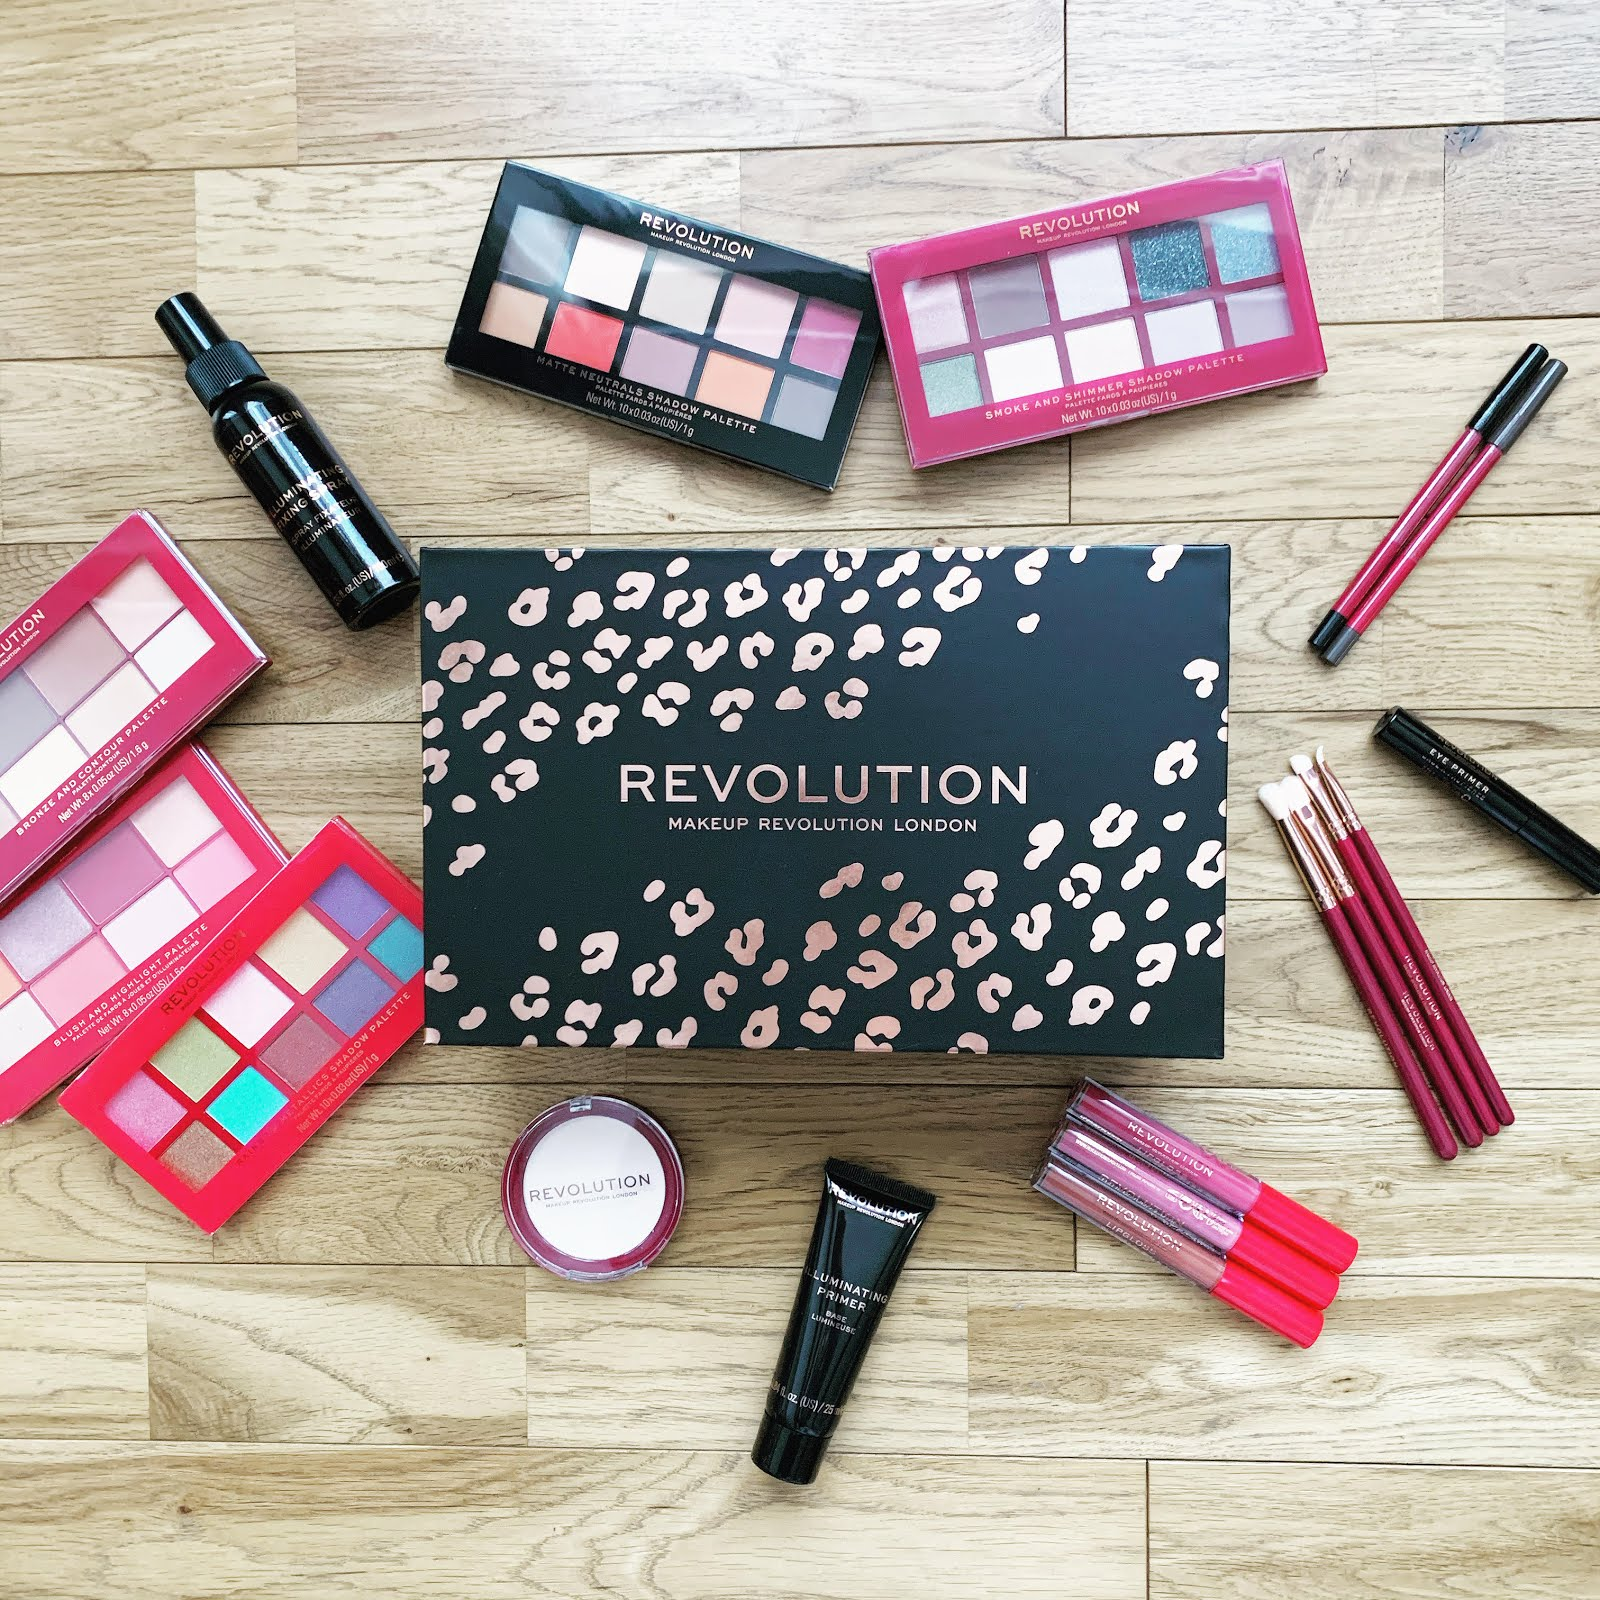 revolution wild about rev vegan set review, unboxing